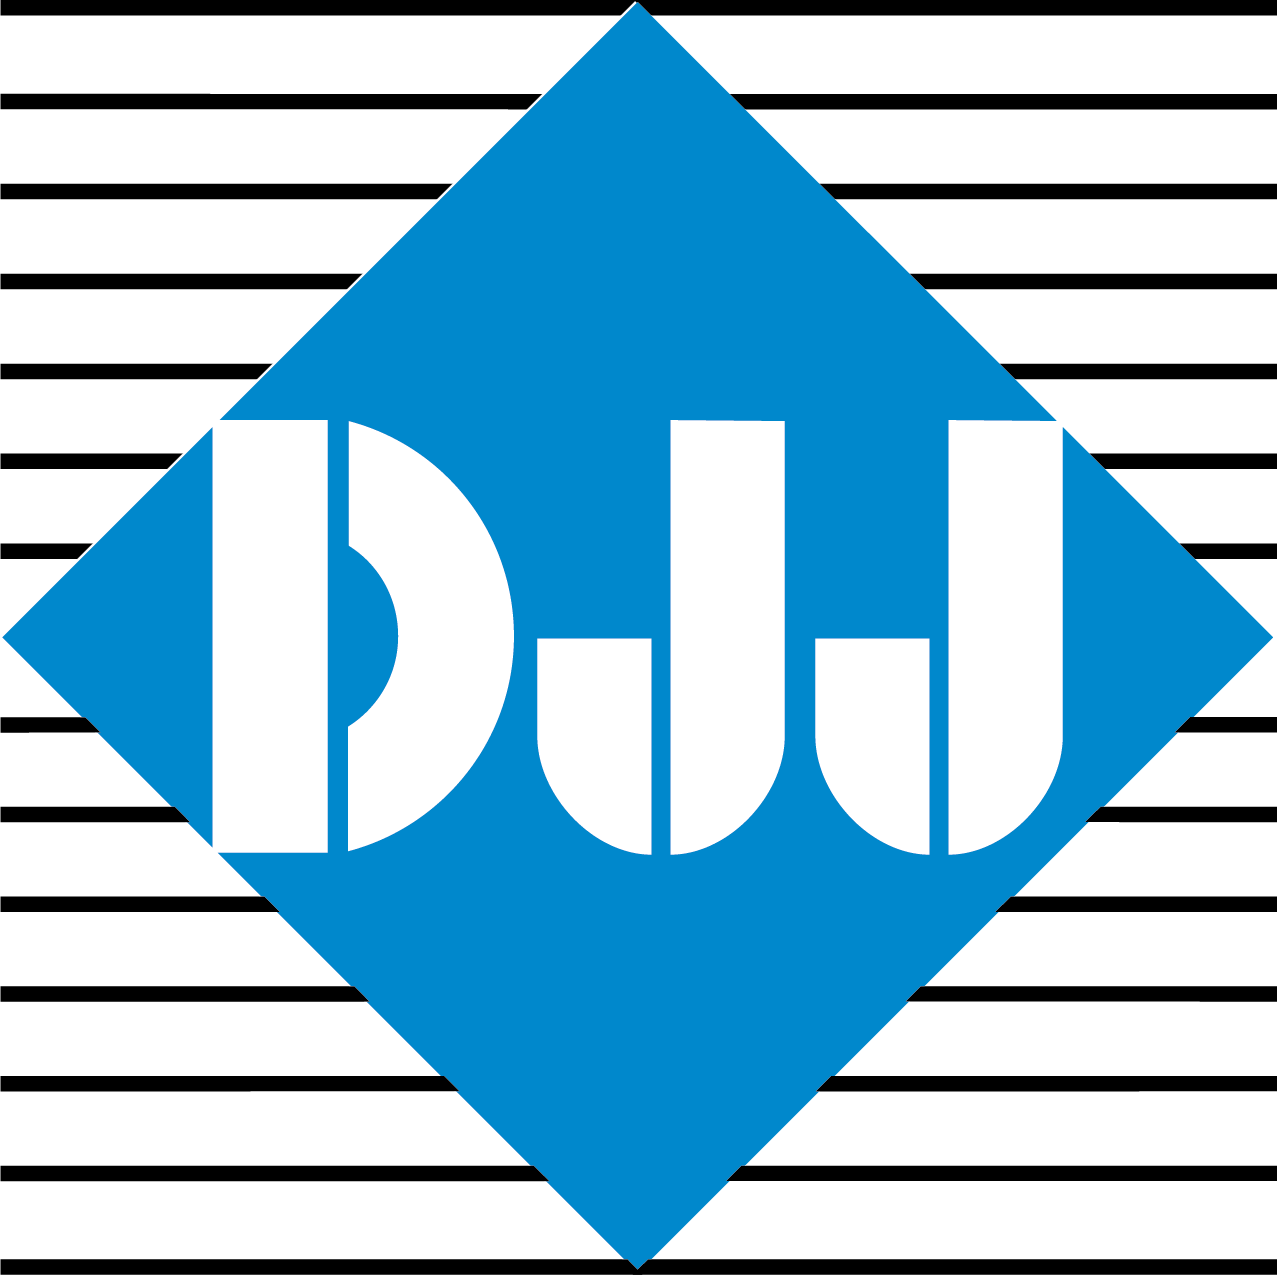 DJJ-logo transparent